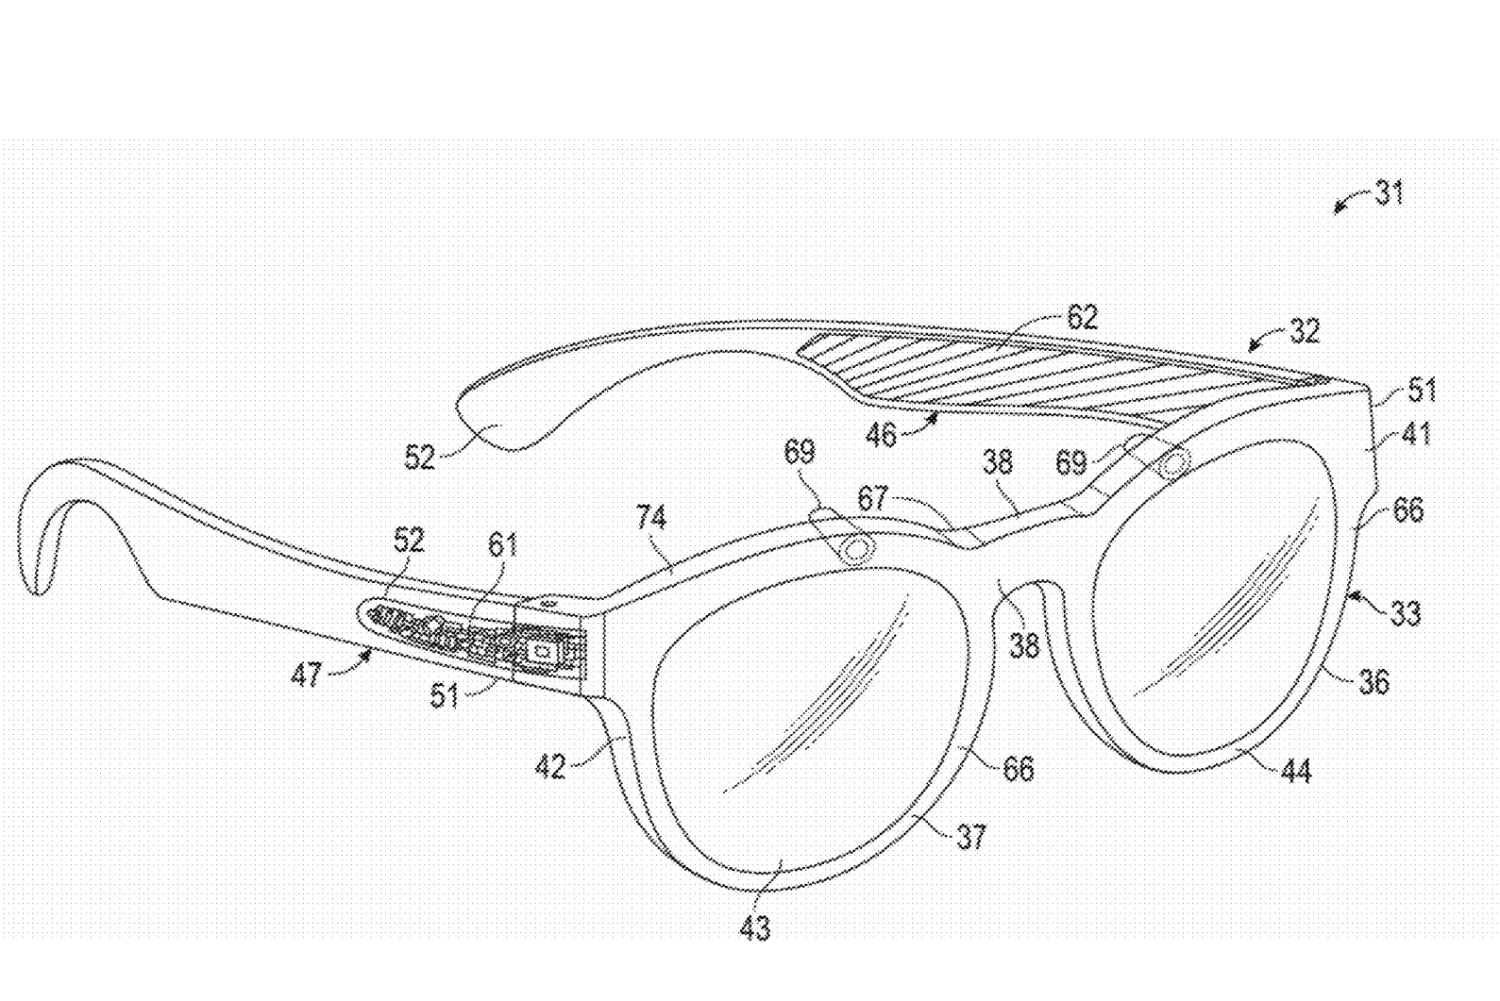 df986bbf9b7 Snap is developing a second version of Spectacles which may include ...